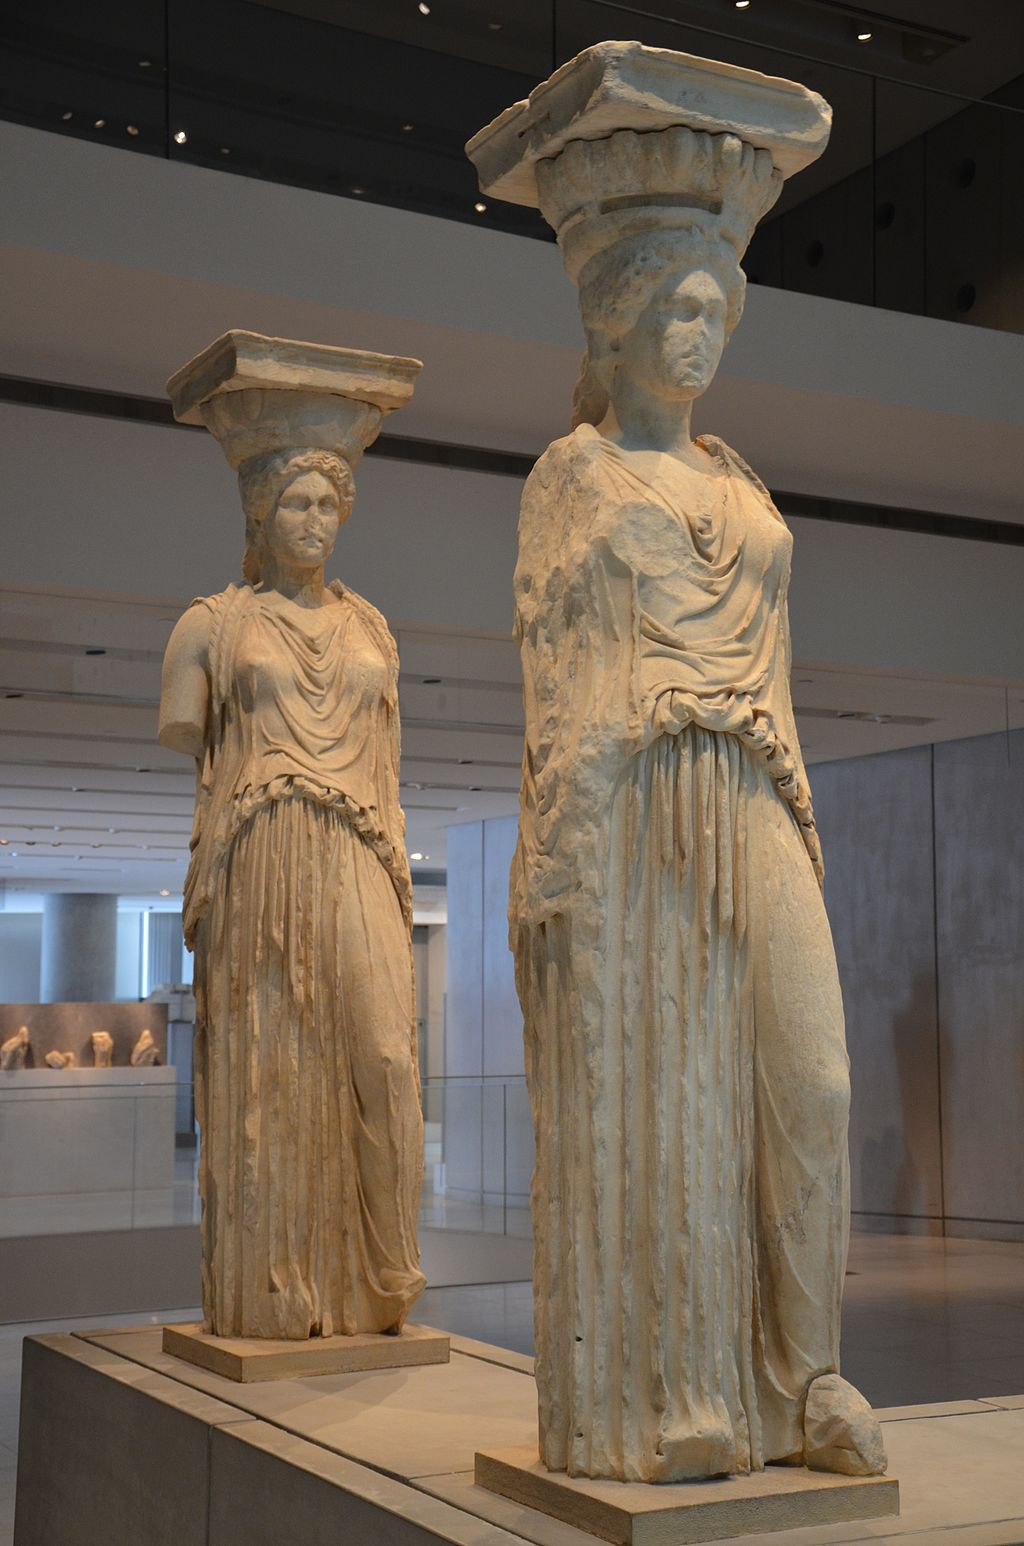 Caryatids from the Erechtheion on the Acropolis, Acropolis Museum, Athens (13889706087)